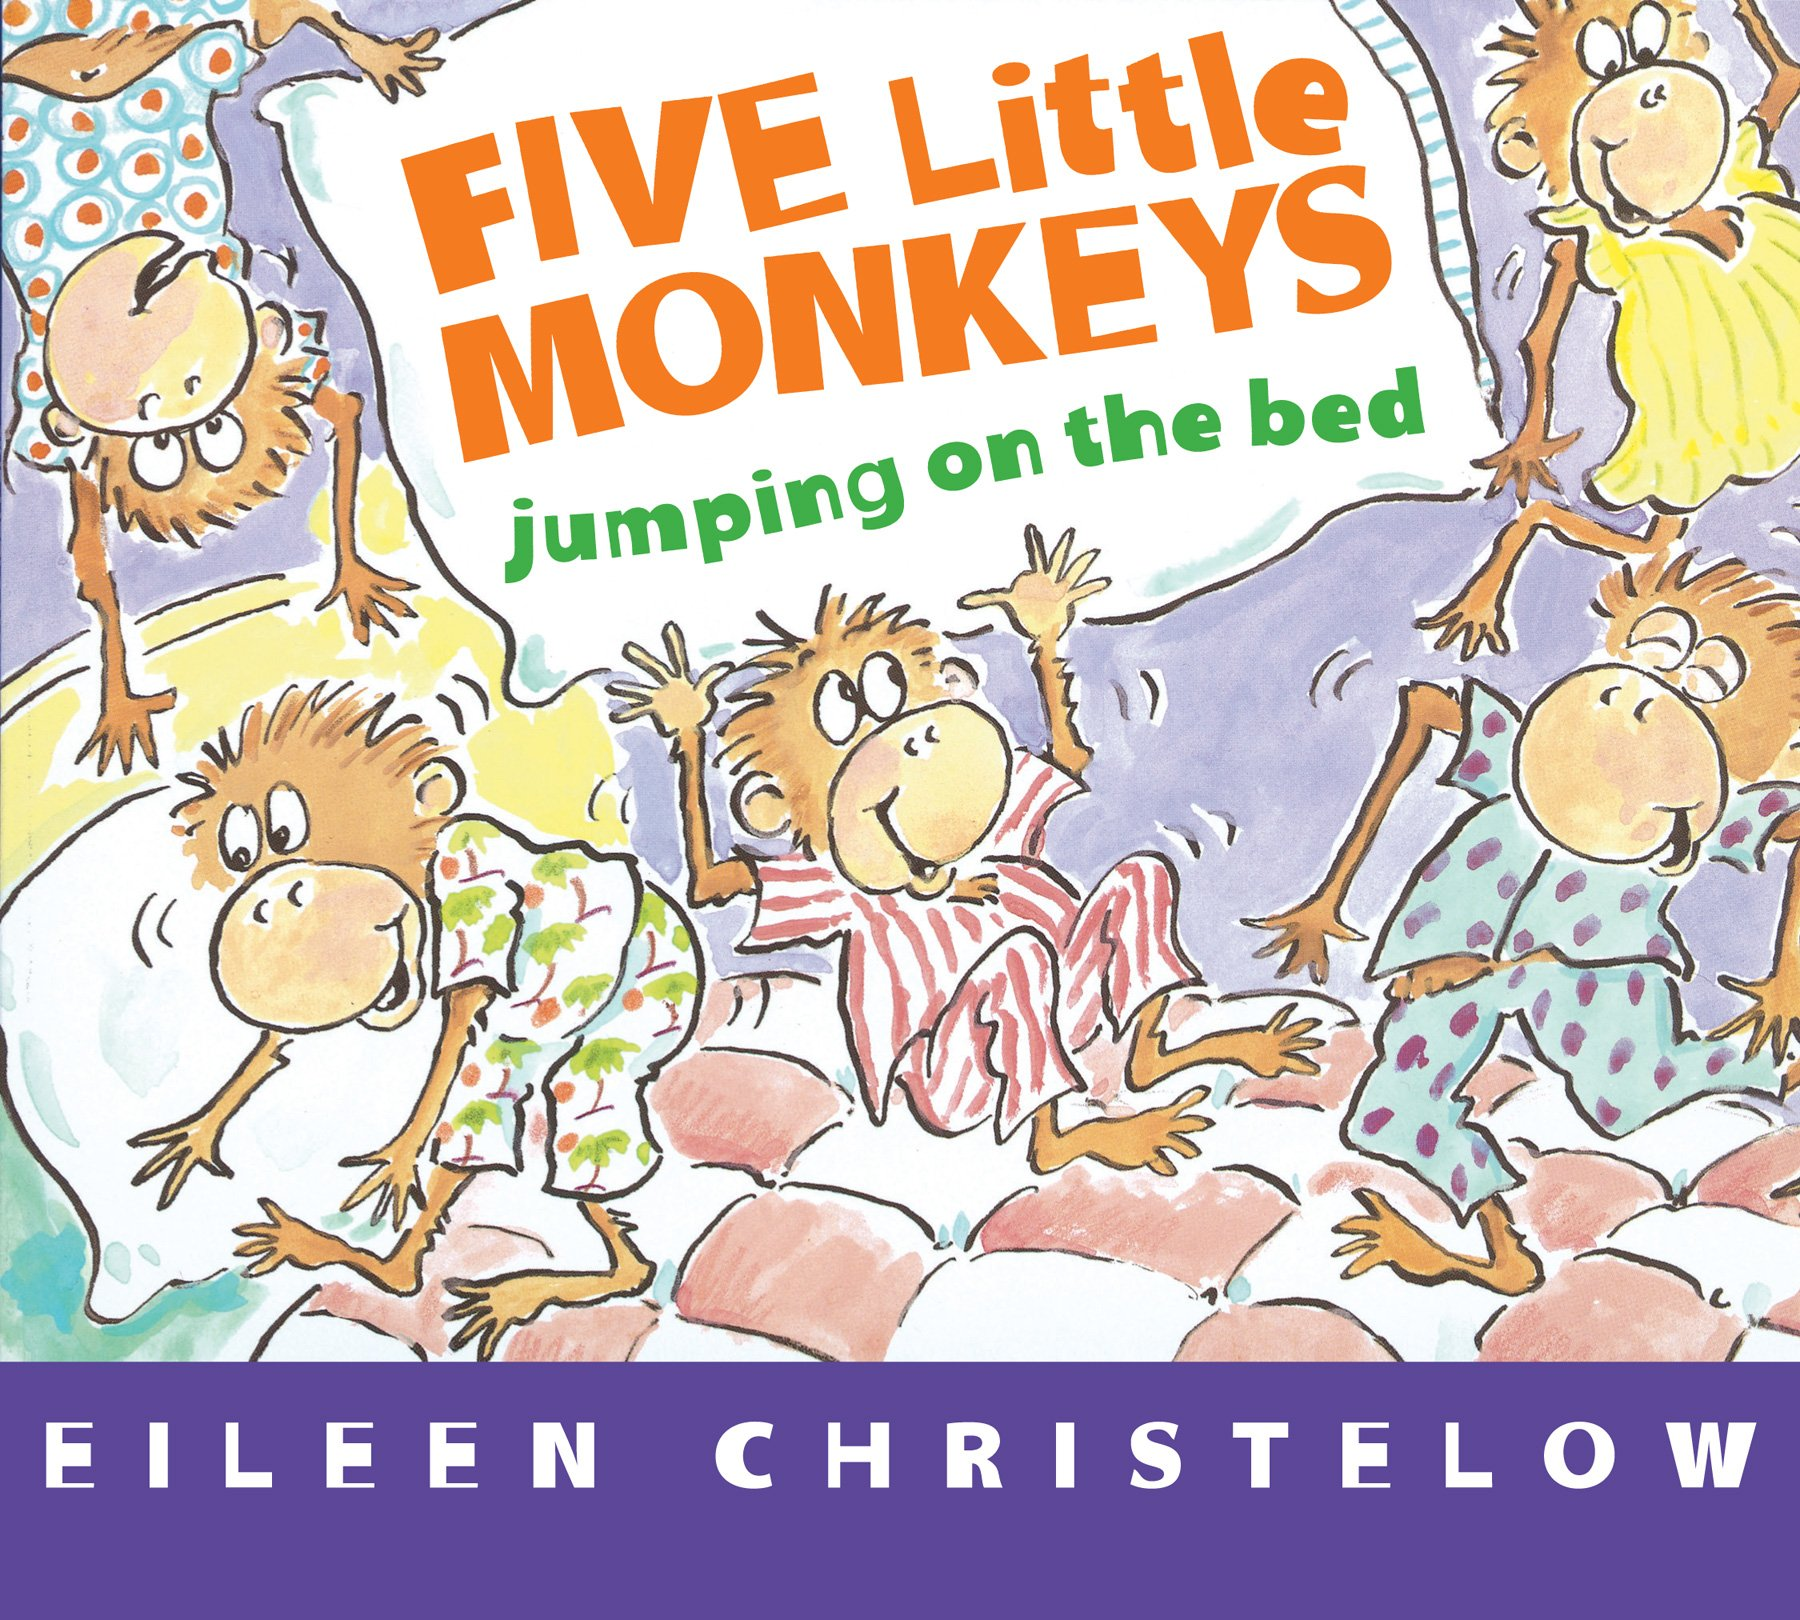 Five Little Monkeys Free Printables and Games